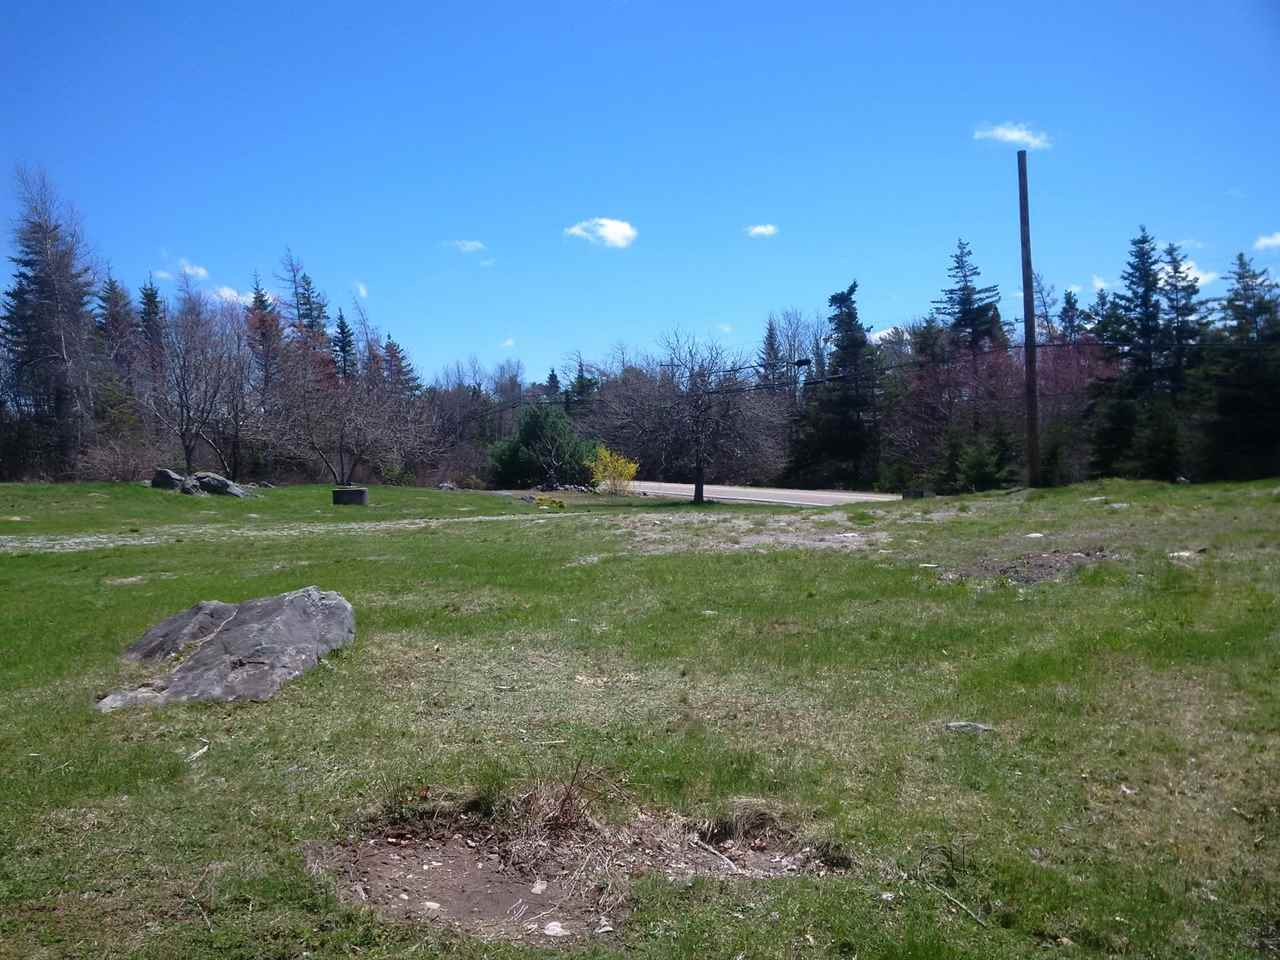 Photo 6: Photos: 5720 Highway 3 in East Jordan: 407-Shelburne County Vacant Land for sale (South Shore)  : MLS®# 201708962